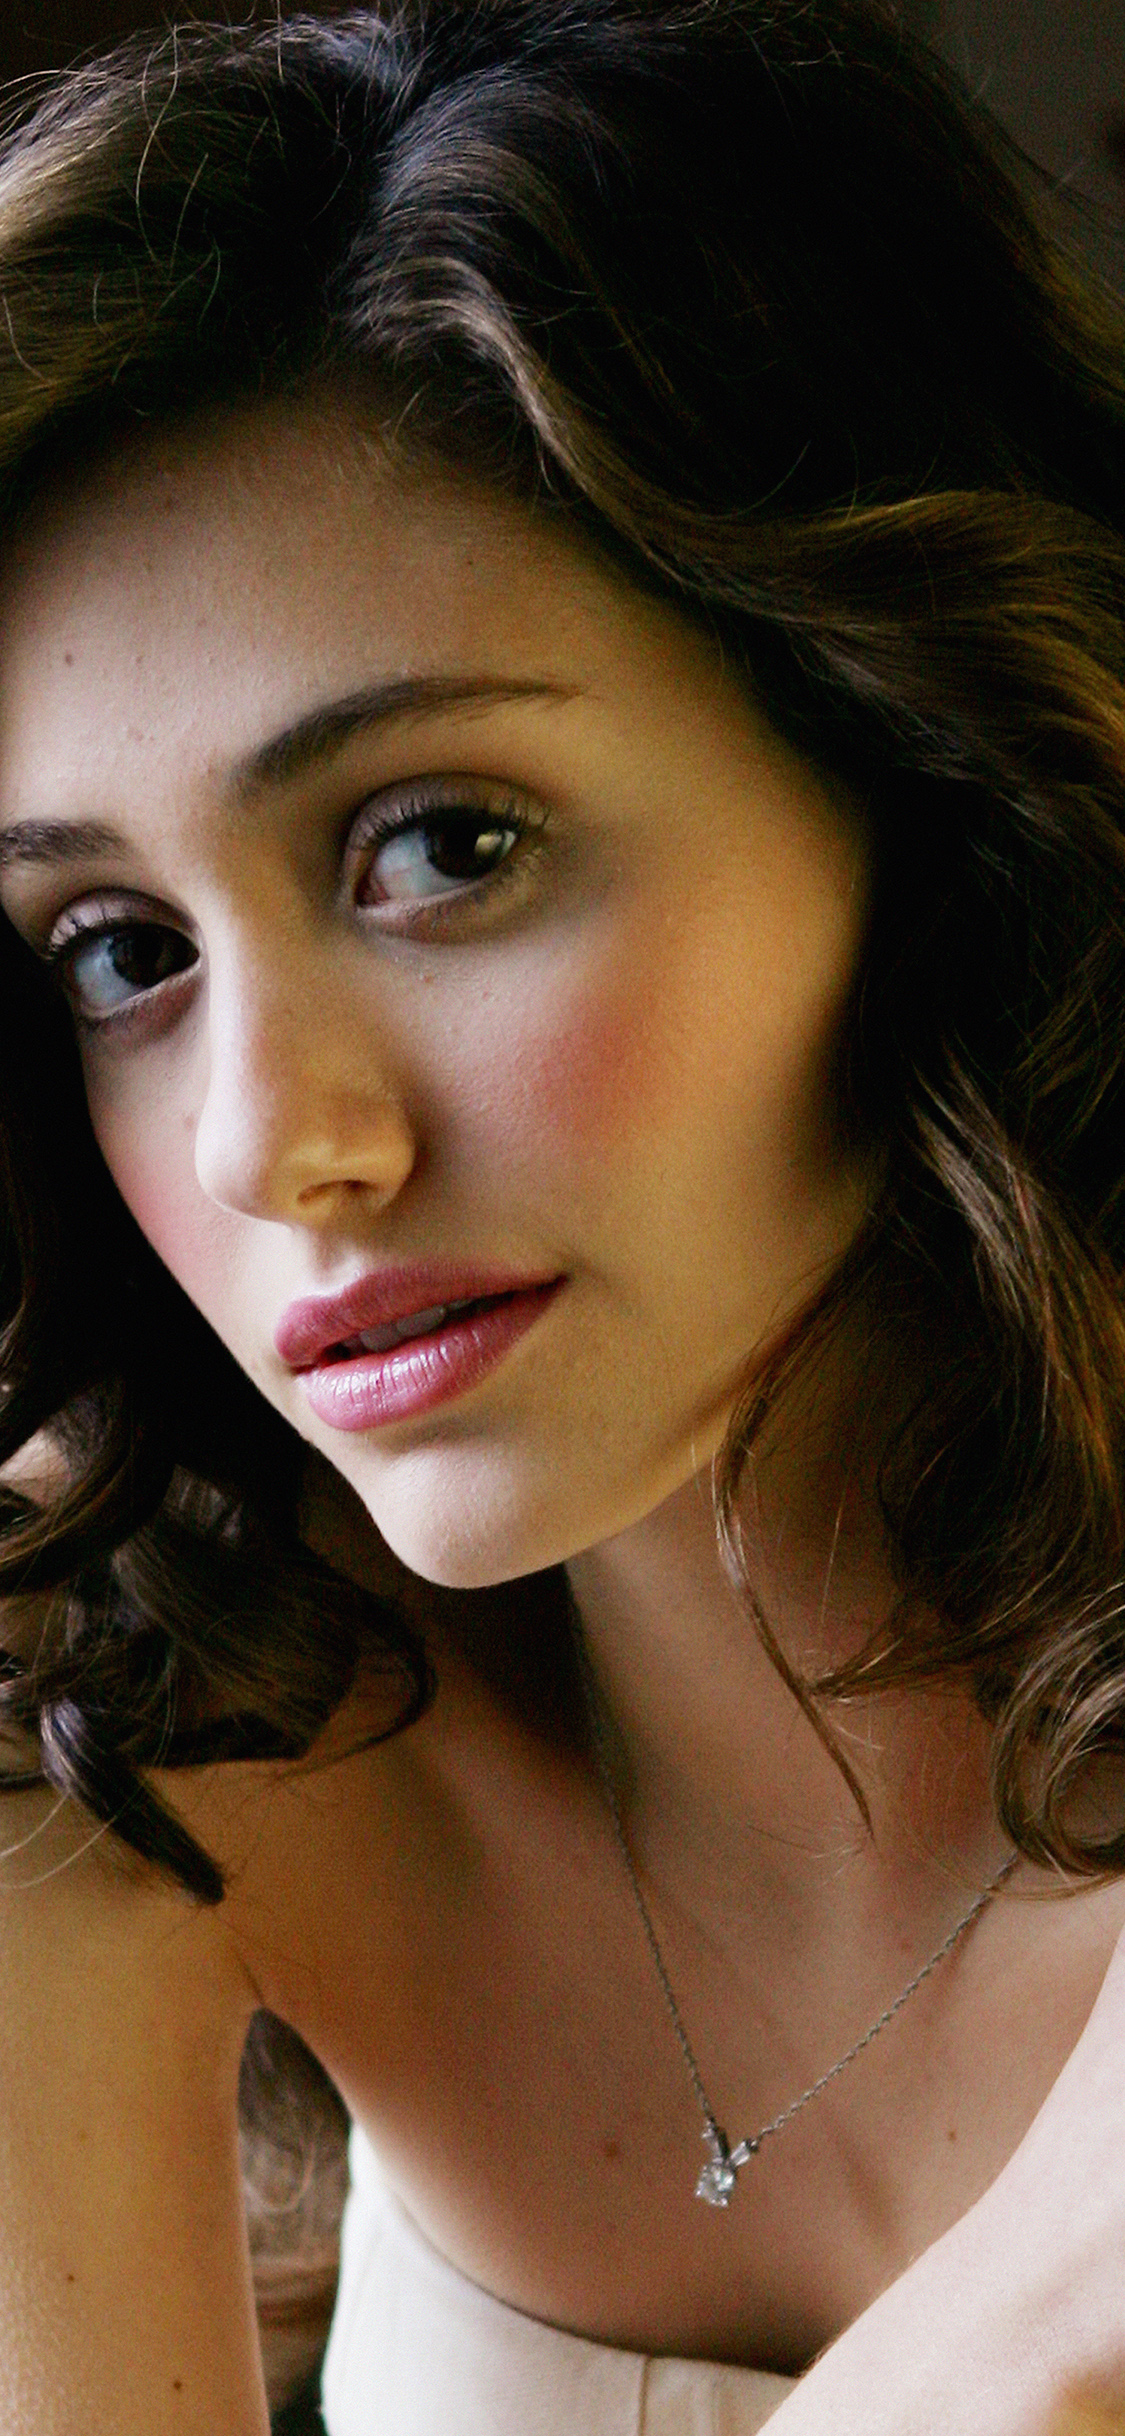 Papersco Iphone Wallpaper Hk61 Emmy Rossum Actress Girl